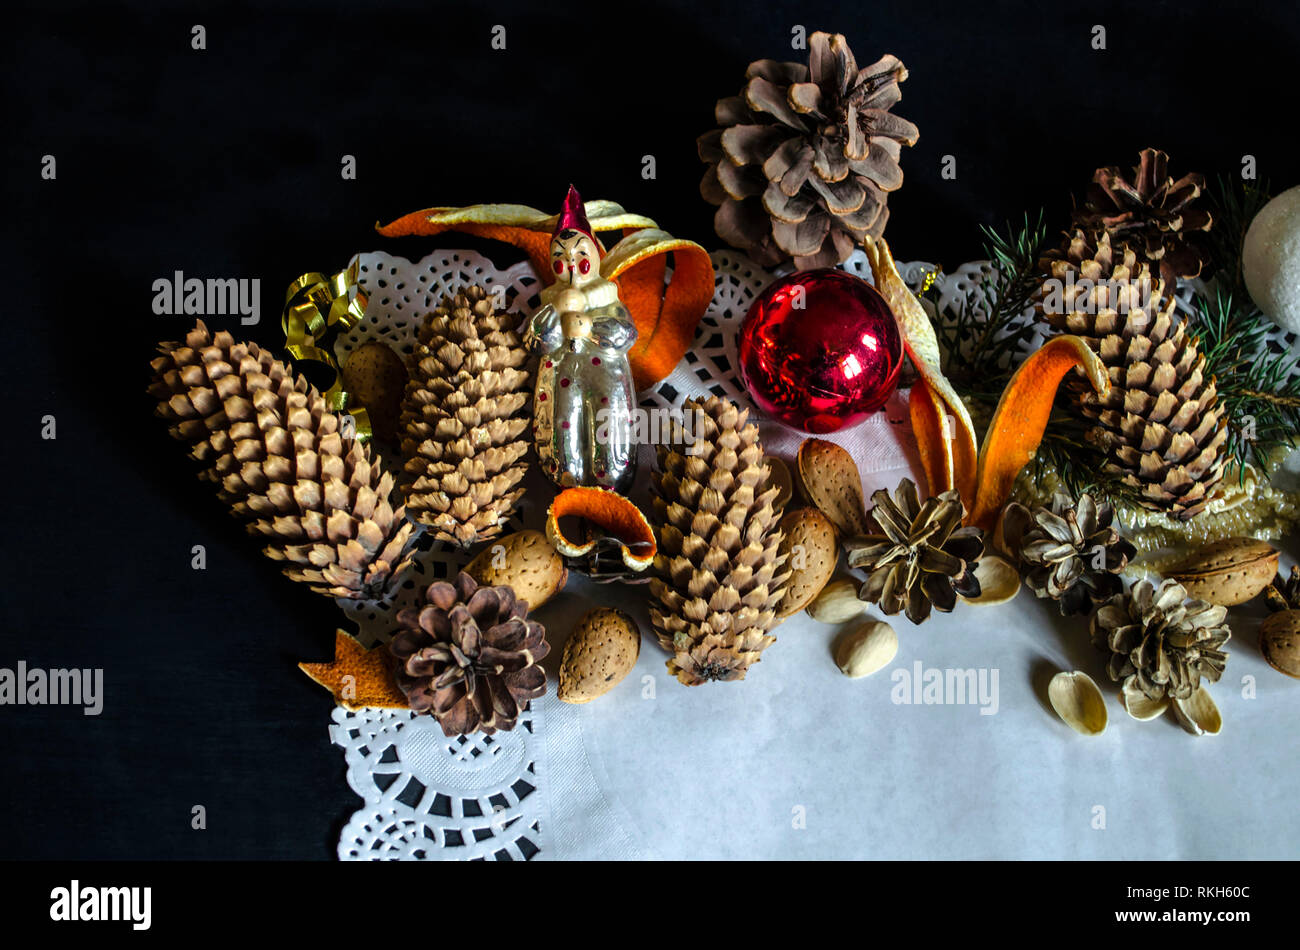 The edge of the paper napkin paper with various pine cones, pine twig, old worn Christmas decorations, almonds and orange peel on a black background - Stock Image